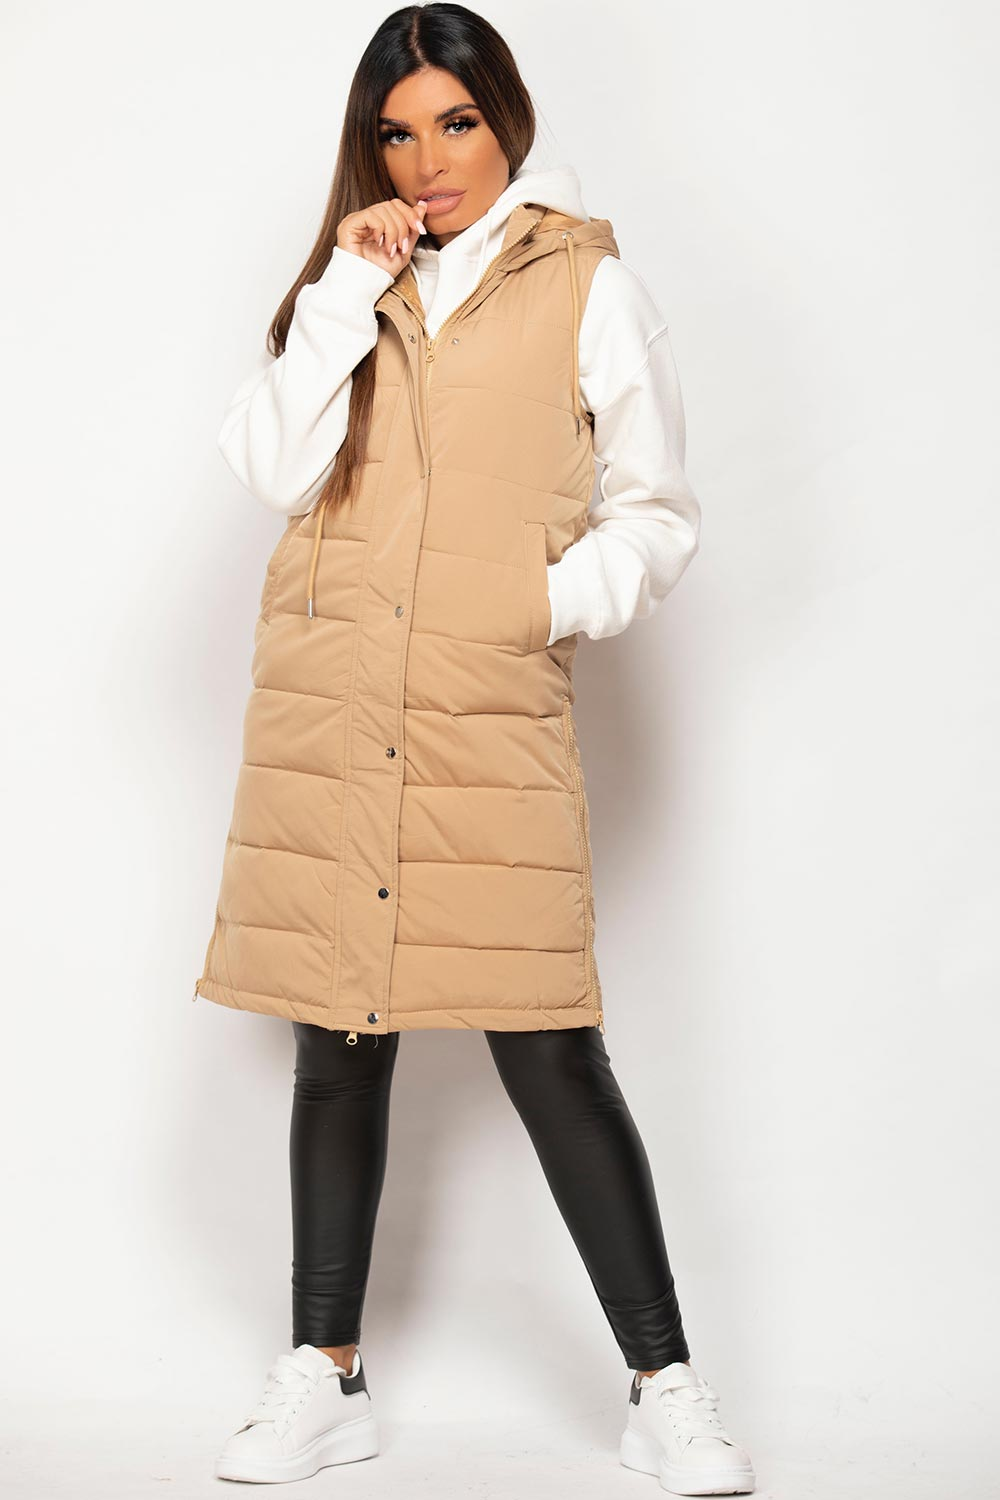 long length body warmer camel